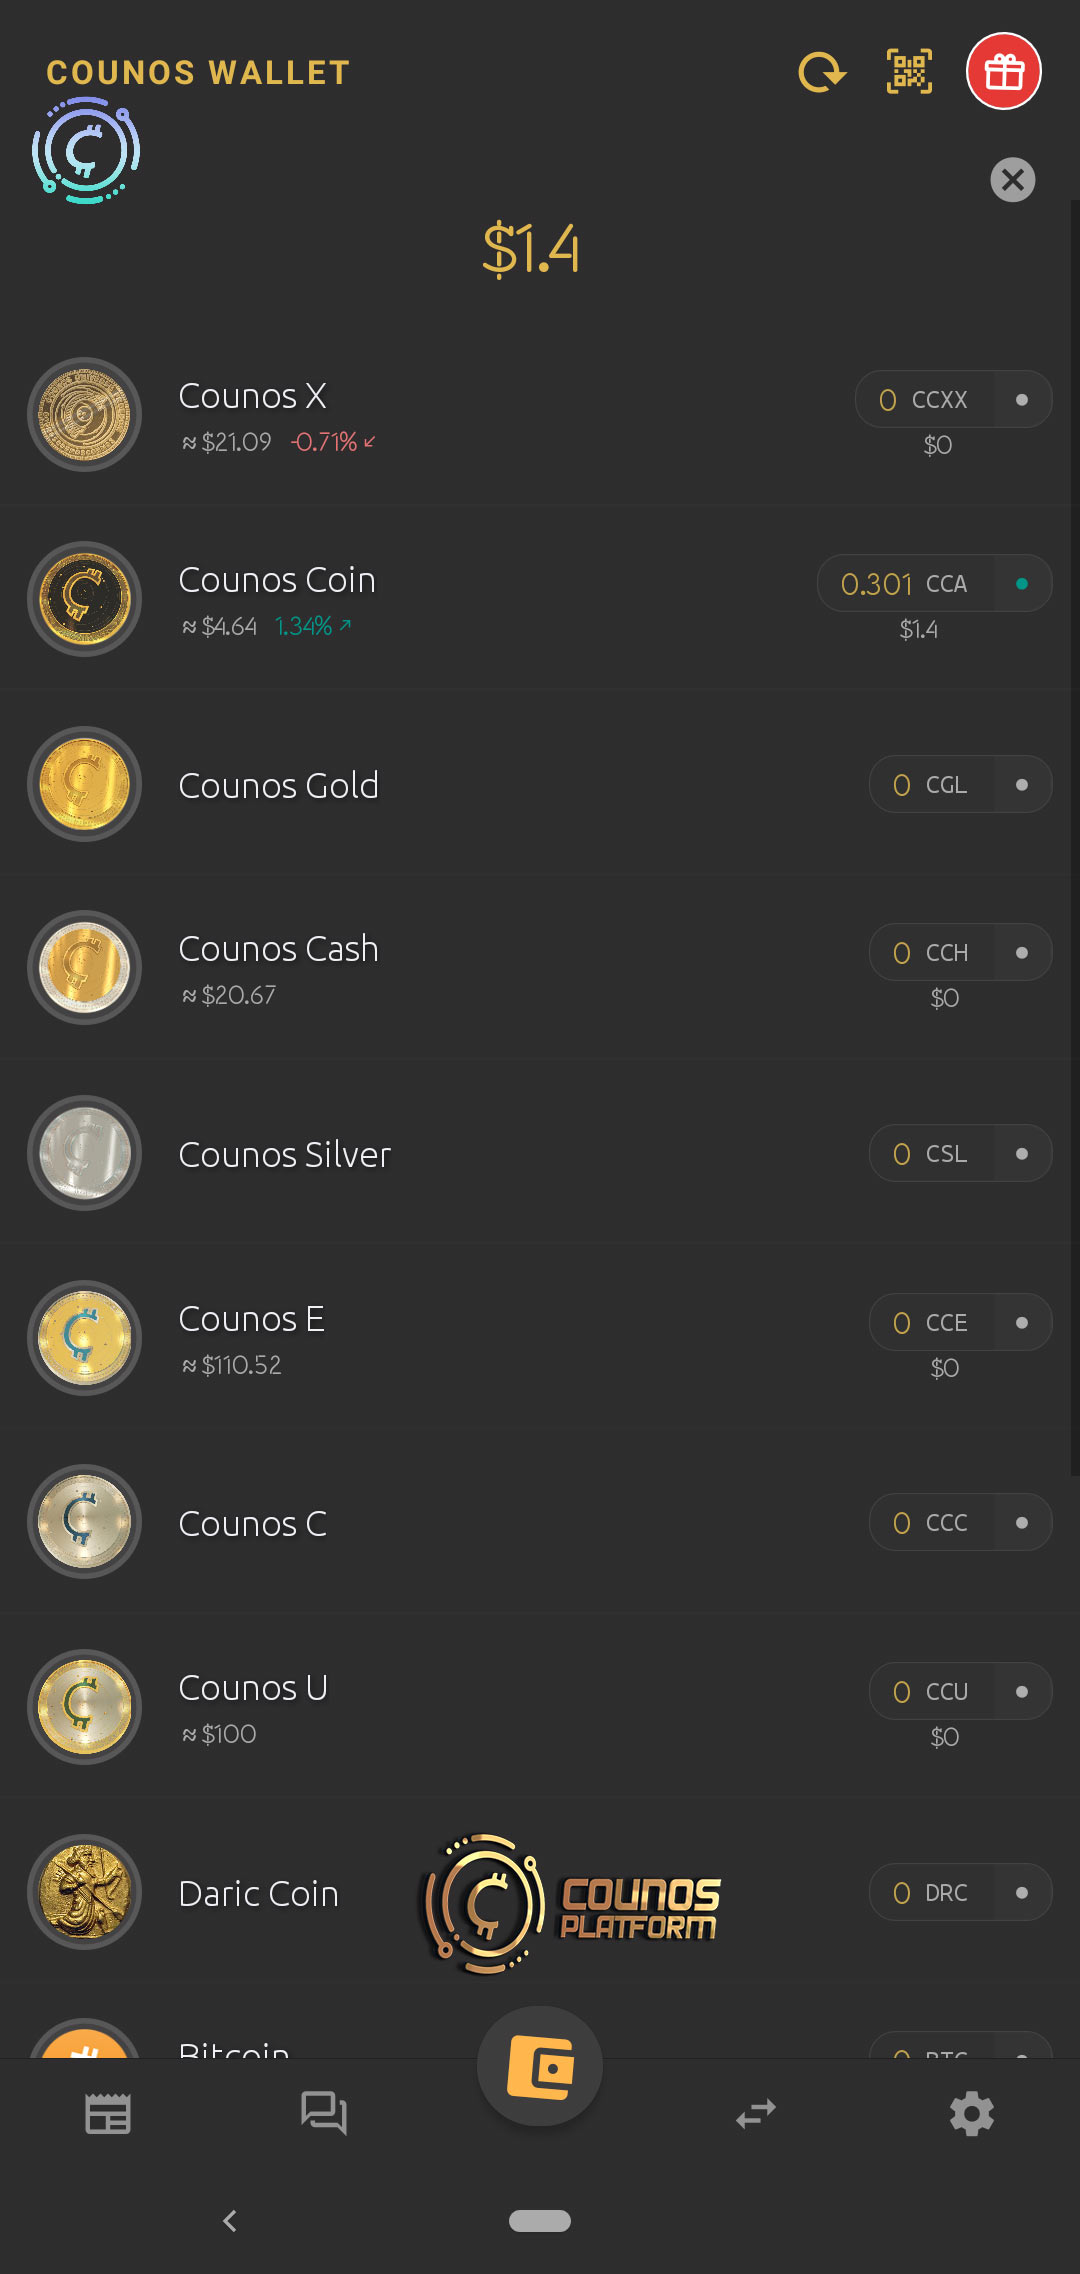 this main button will take you to the main page of the Counos         Mobile Wallet 1.9.0 in which you can see the list of all cryptocurrencies and also the balance for each coin and all the total balance in U.S. dollar